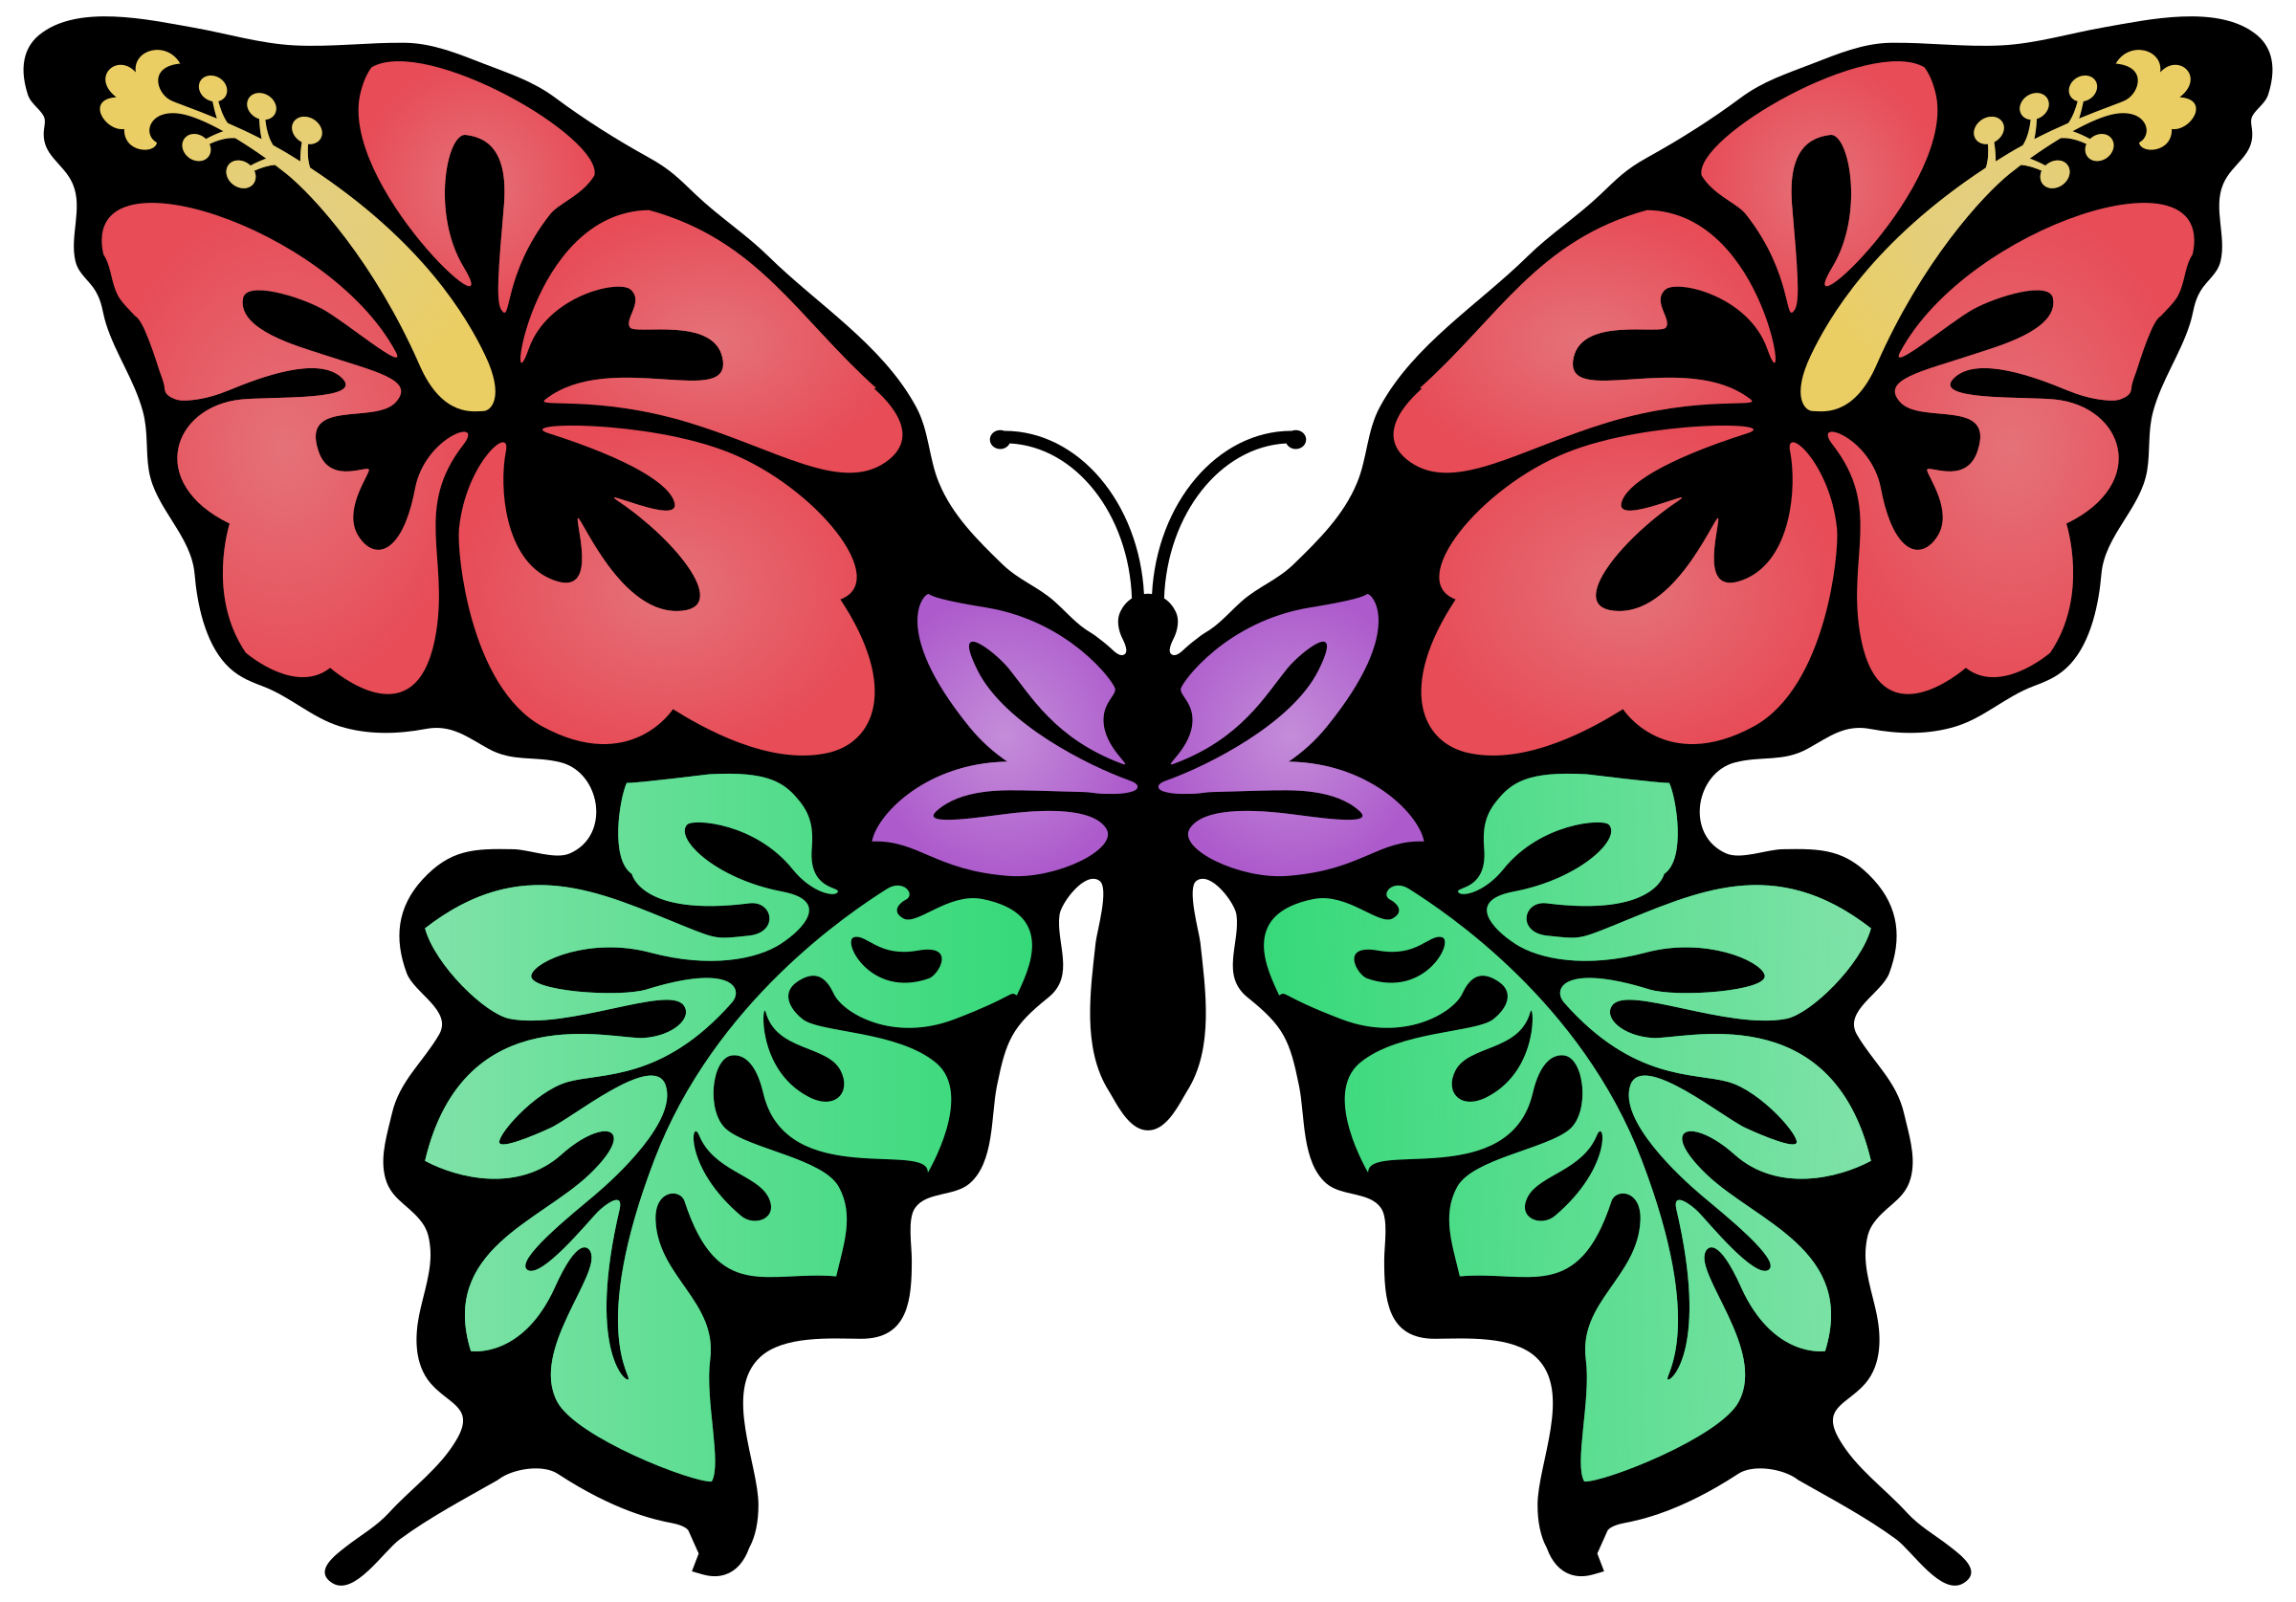 Butterfly flower clipart clip art transparent library Butterfly Flower Clipart at GetDrawings.com | Free for personal use ... clip art transparent library